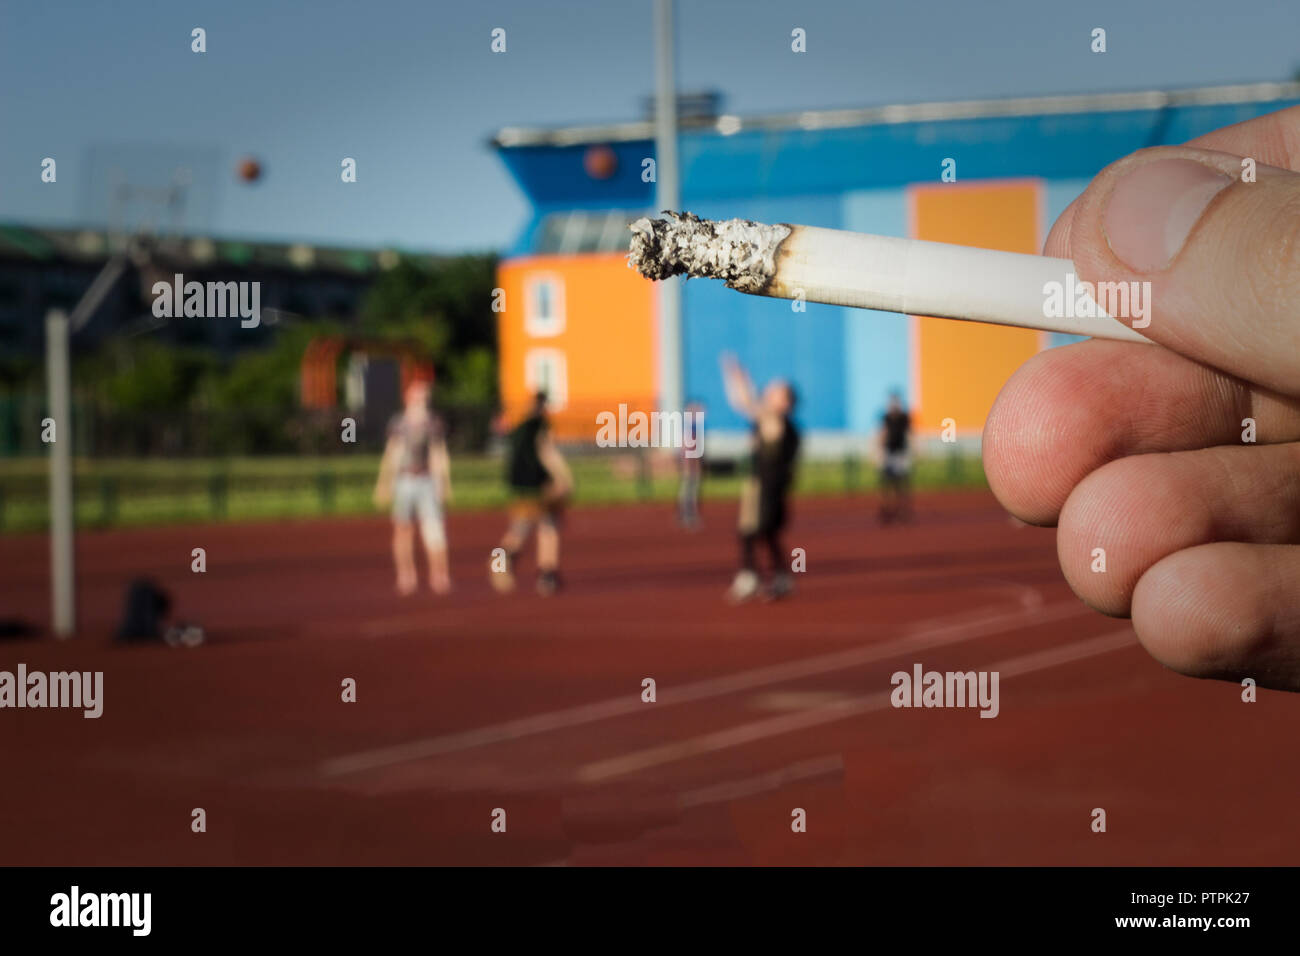 A man holds a cigarette in the background of the stadium where they play basketball, close-up, bad habit - Stock Image